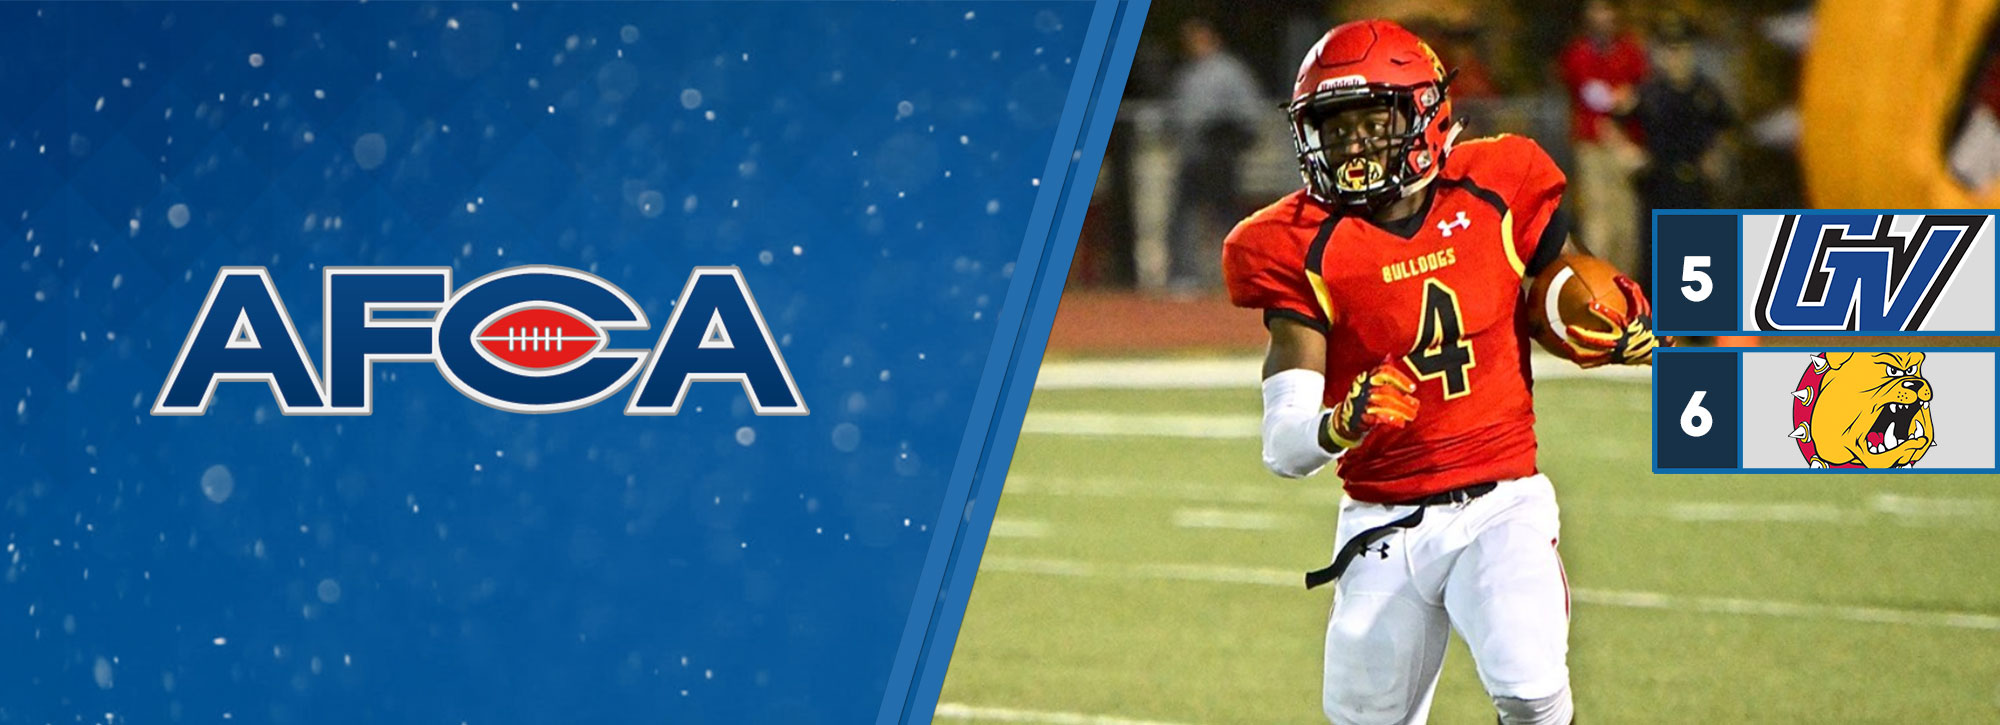 Grand Valley State Improves to No. 5, Ferris State No. 6 in Latest AFCA Rankings